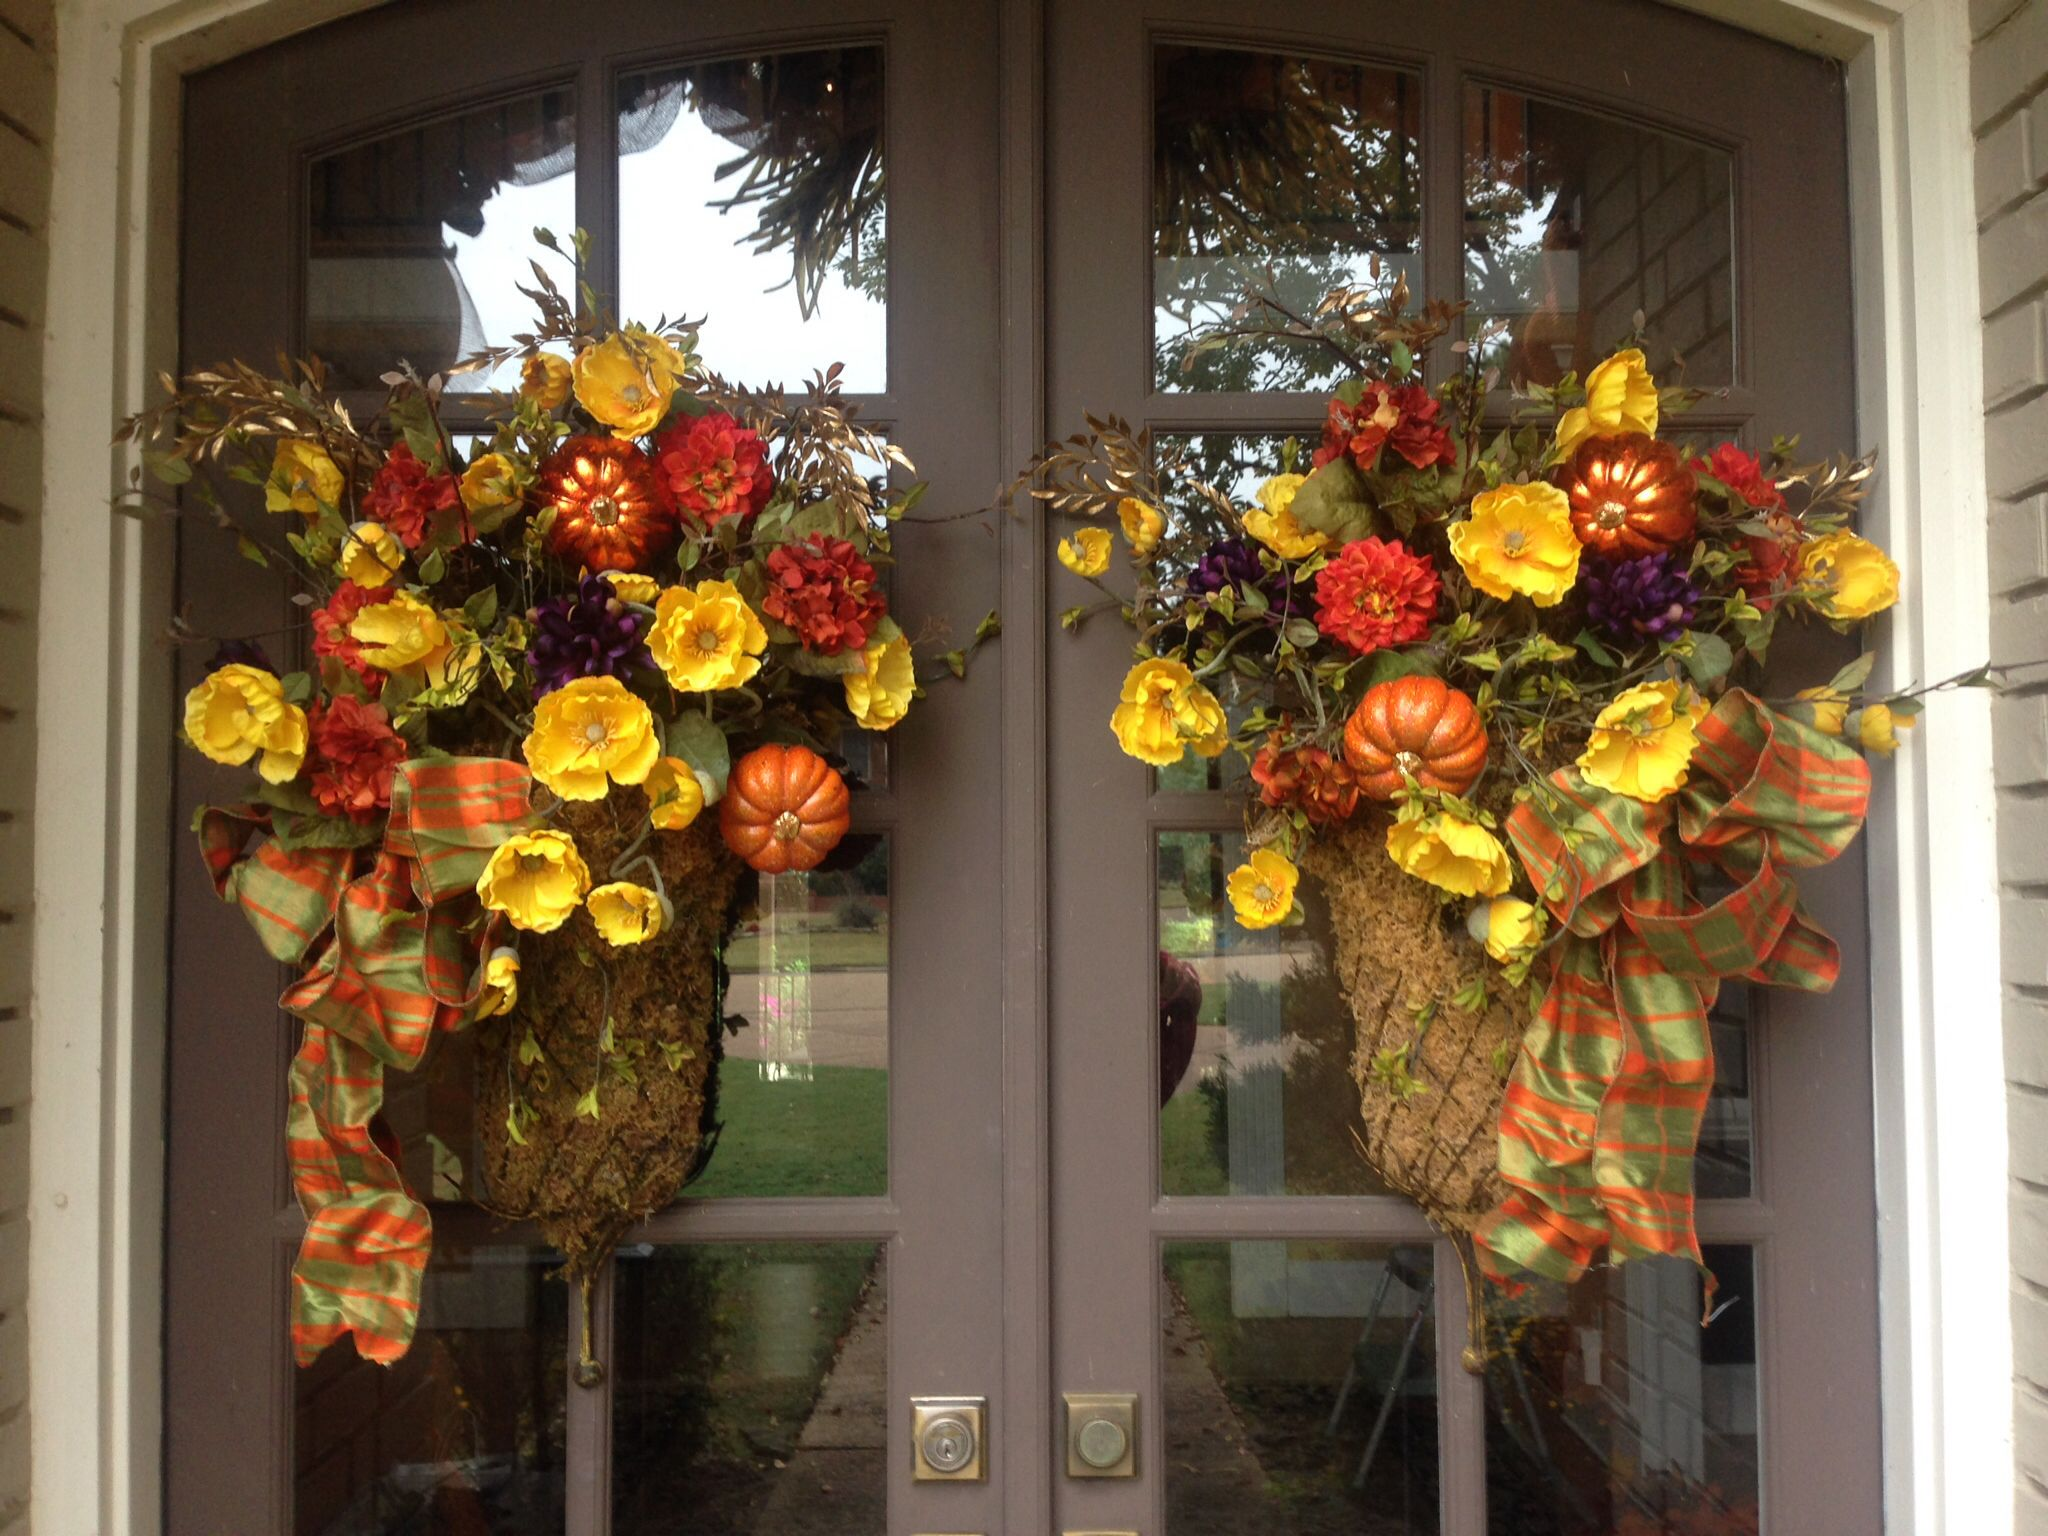 Thanksgiving front door decorations - Thanksgiving Fall Front Door Moss Baskets With Flowers